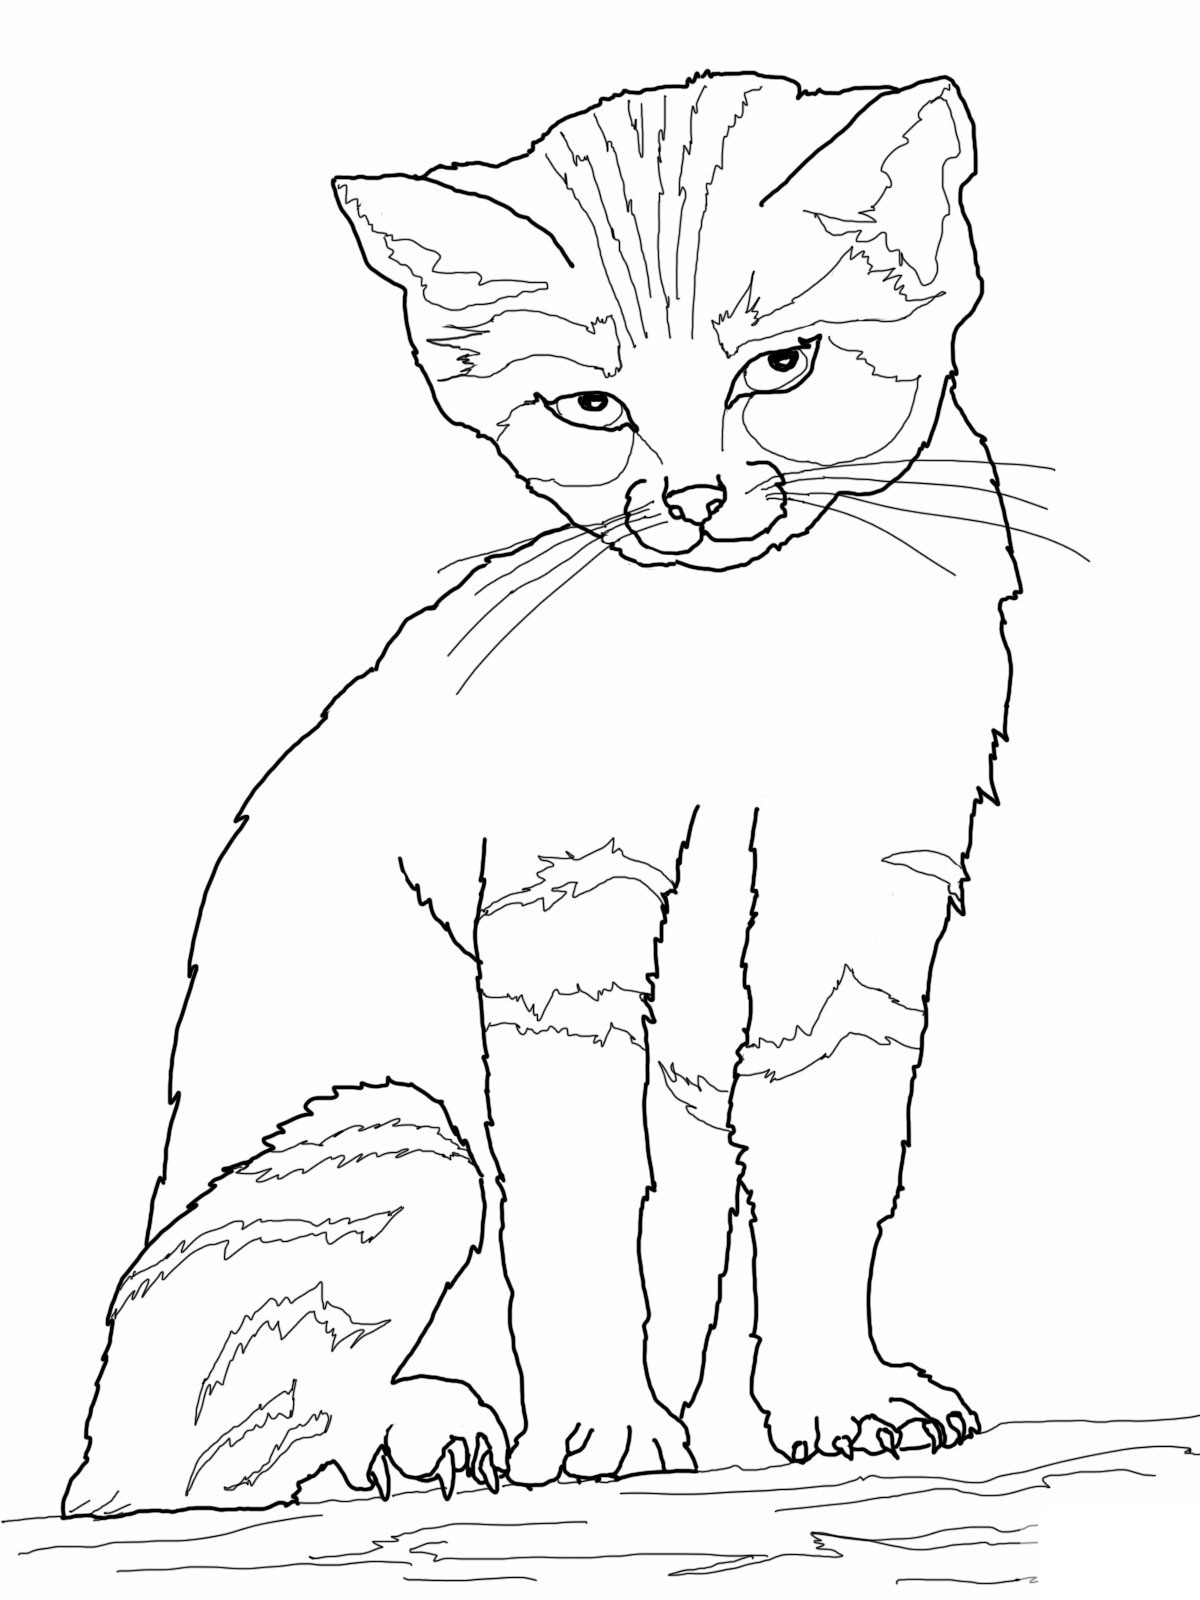 Best ideas about Printable Cat Coloring Pages For Kids . Save or Pin Free Printable Cat Coloring Pages For Kids Now.